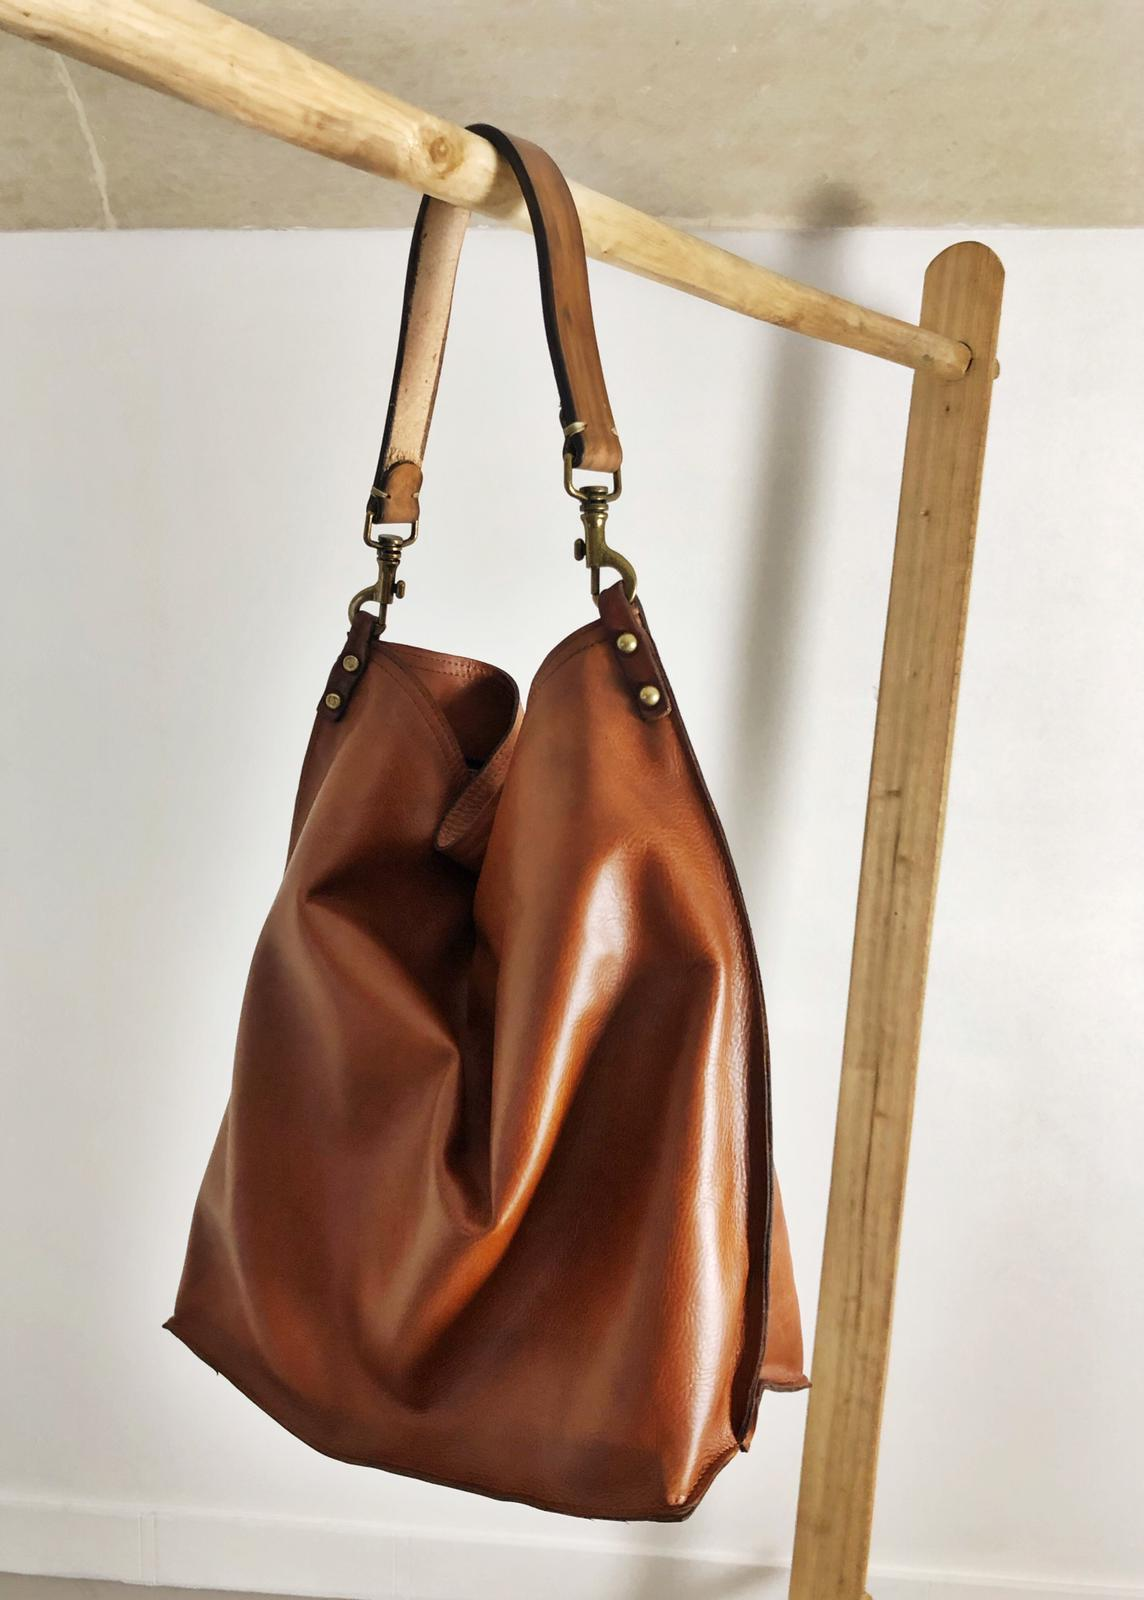 ALLEGRA BAG handmade leather bag image 3